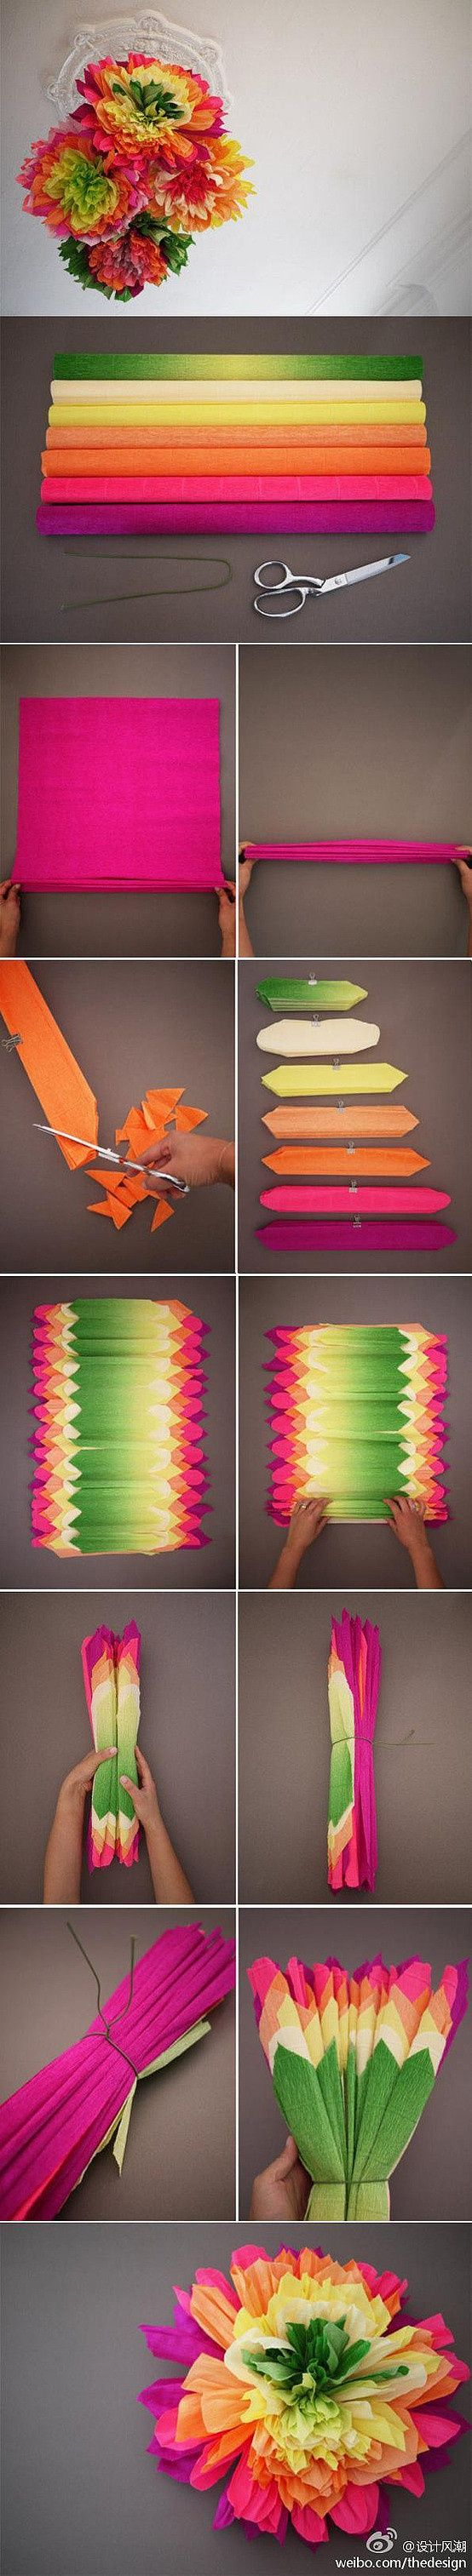 Tissue paper flower pictorial // @Kaavia Kanesalingam Kanesalingam Kanesalingam - an office-brightening, rainy day, dollar store project for you?